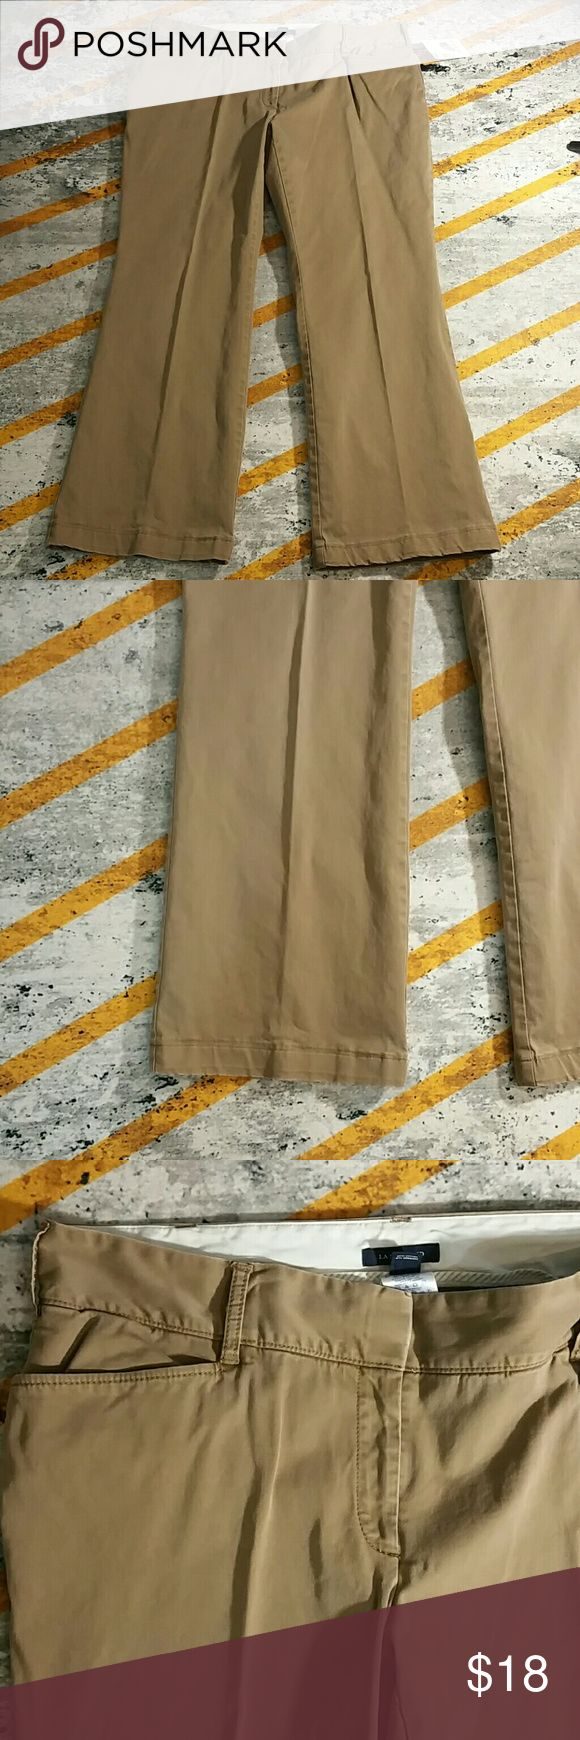 Petite plus Wide leg brown Chino 70060 Classic Chino in wide leg style with hook and zipper closure. Back button pocket in a nice cappuccino brown. Size is 16WP Lands' End Pants Trousers